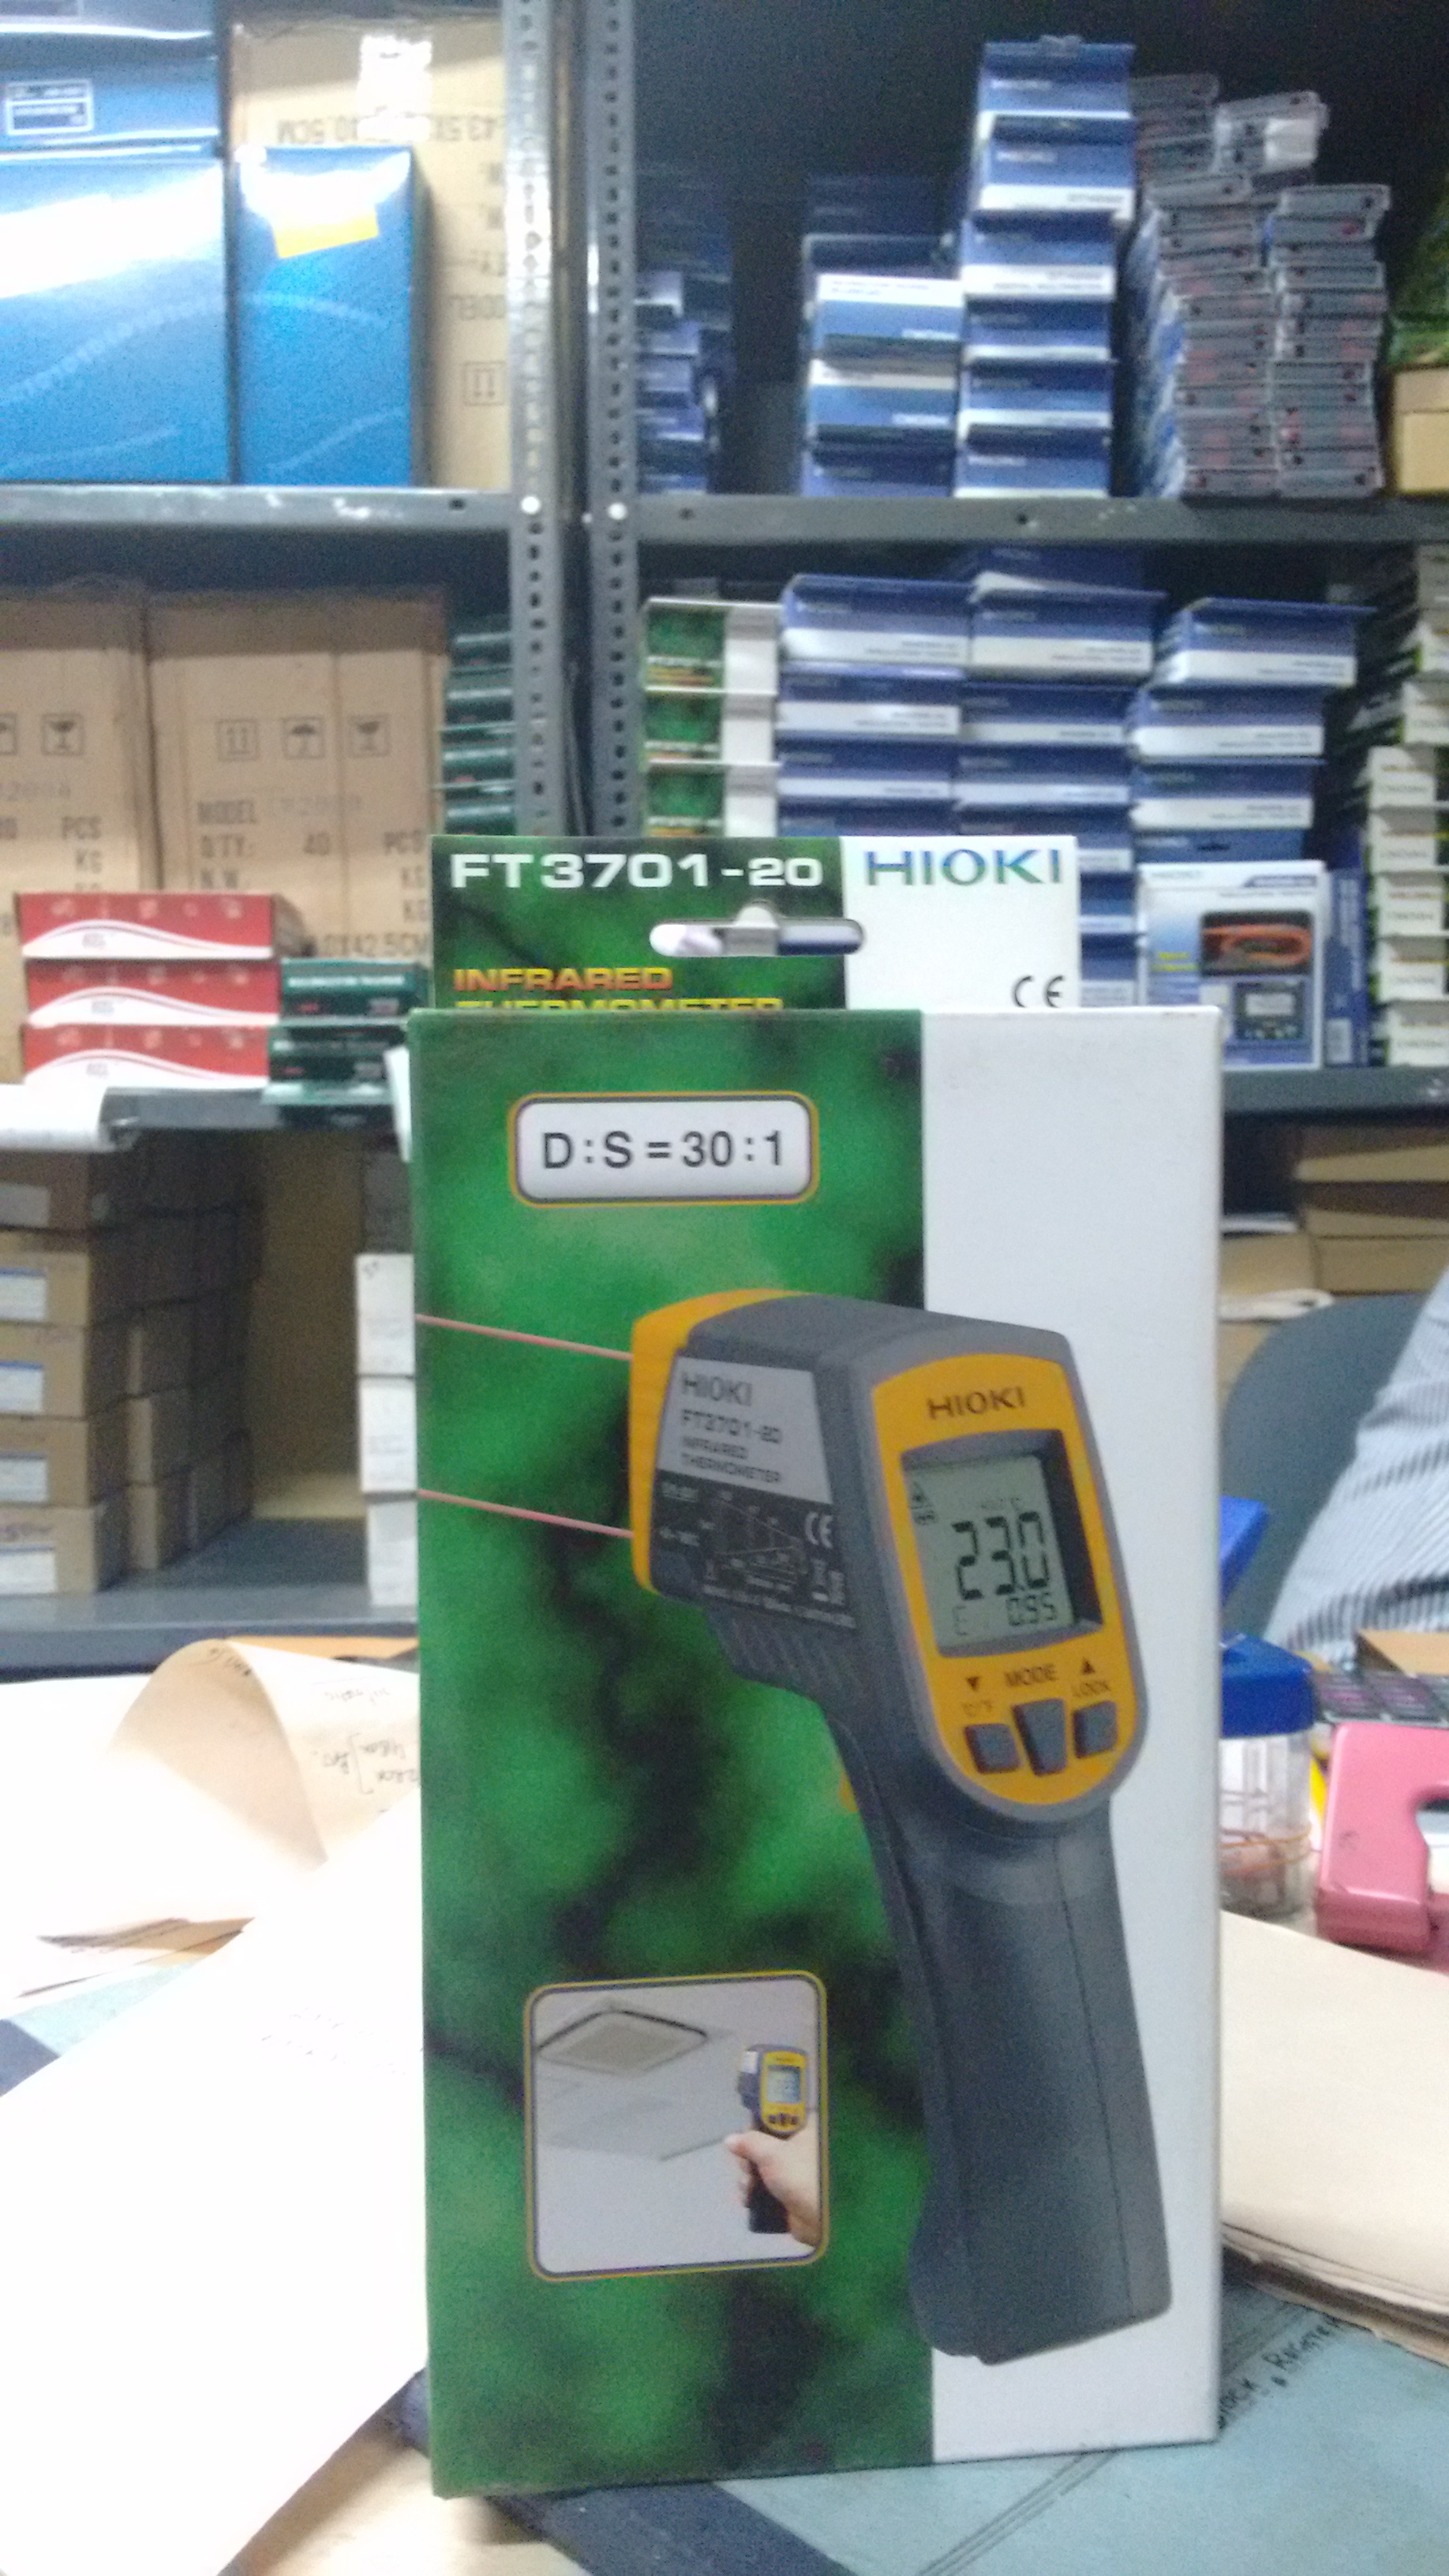 HIOKI Infrared Thermometer. FT3701-20. MADE IN JAPAN.  CHEAPER THAN THE COMPETITION. 30:1 DS Ratio.   Infrared Thermometer in Kolkata, Calcutta, West Bengal, India.  Cheap and best.